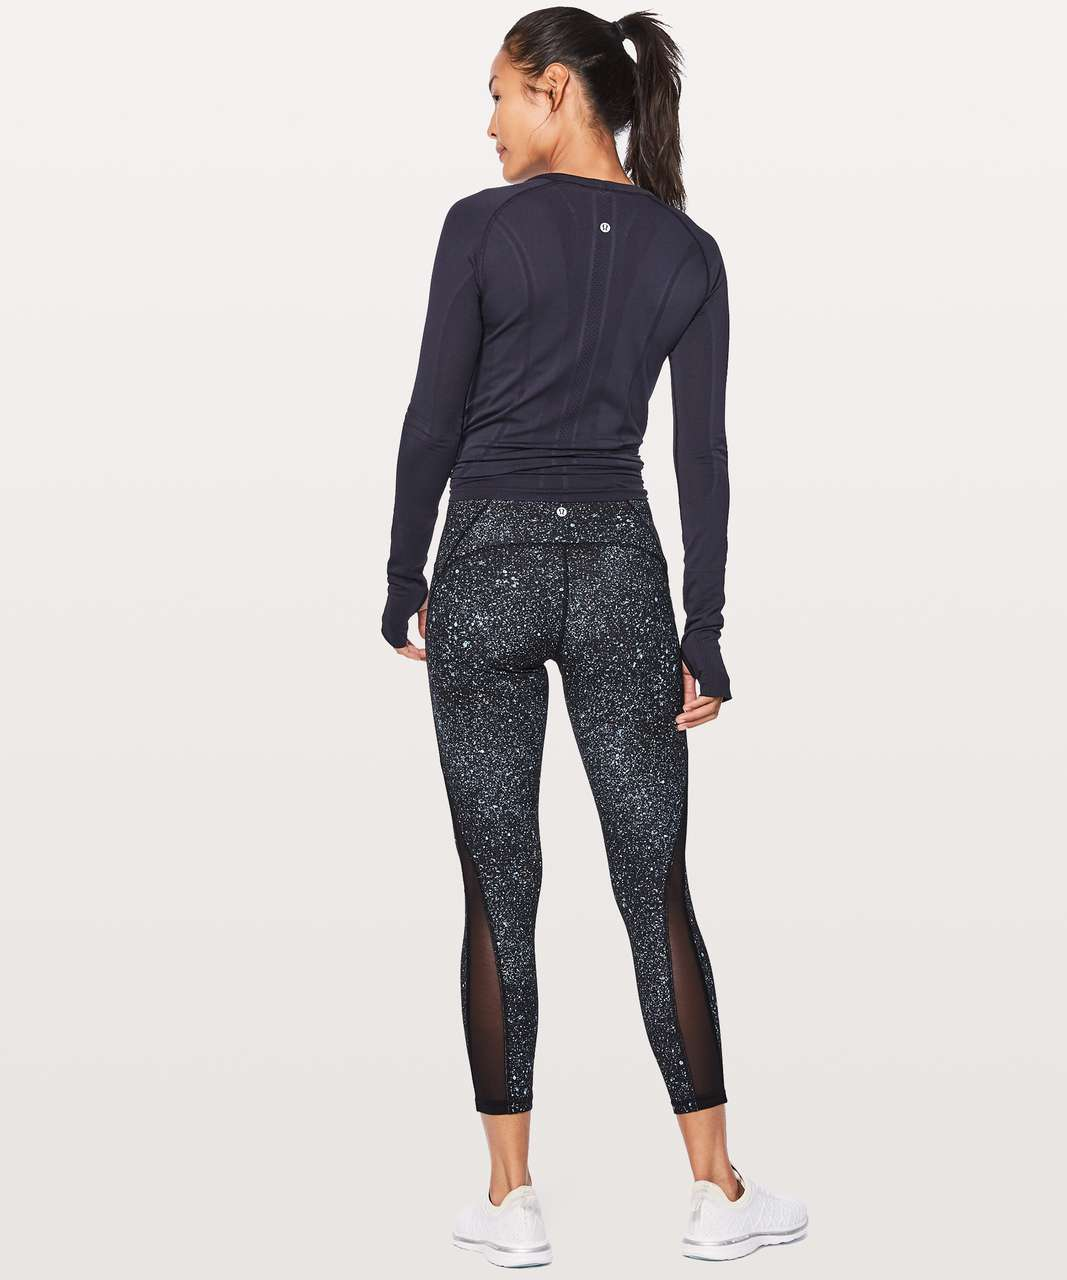 "Lululemon Train Times 7/8 Pant 25"" - Mineralize Multi / Black"